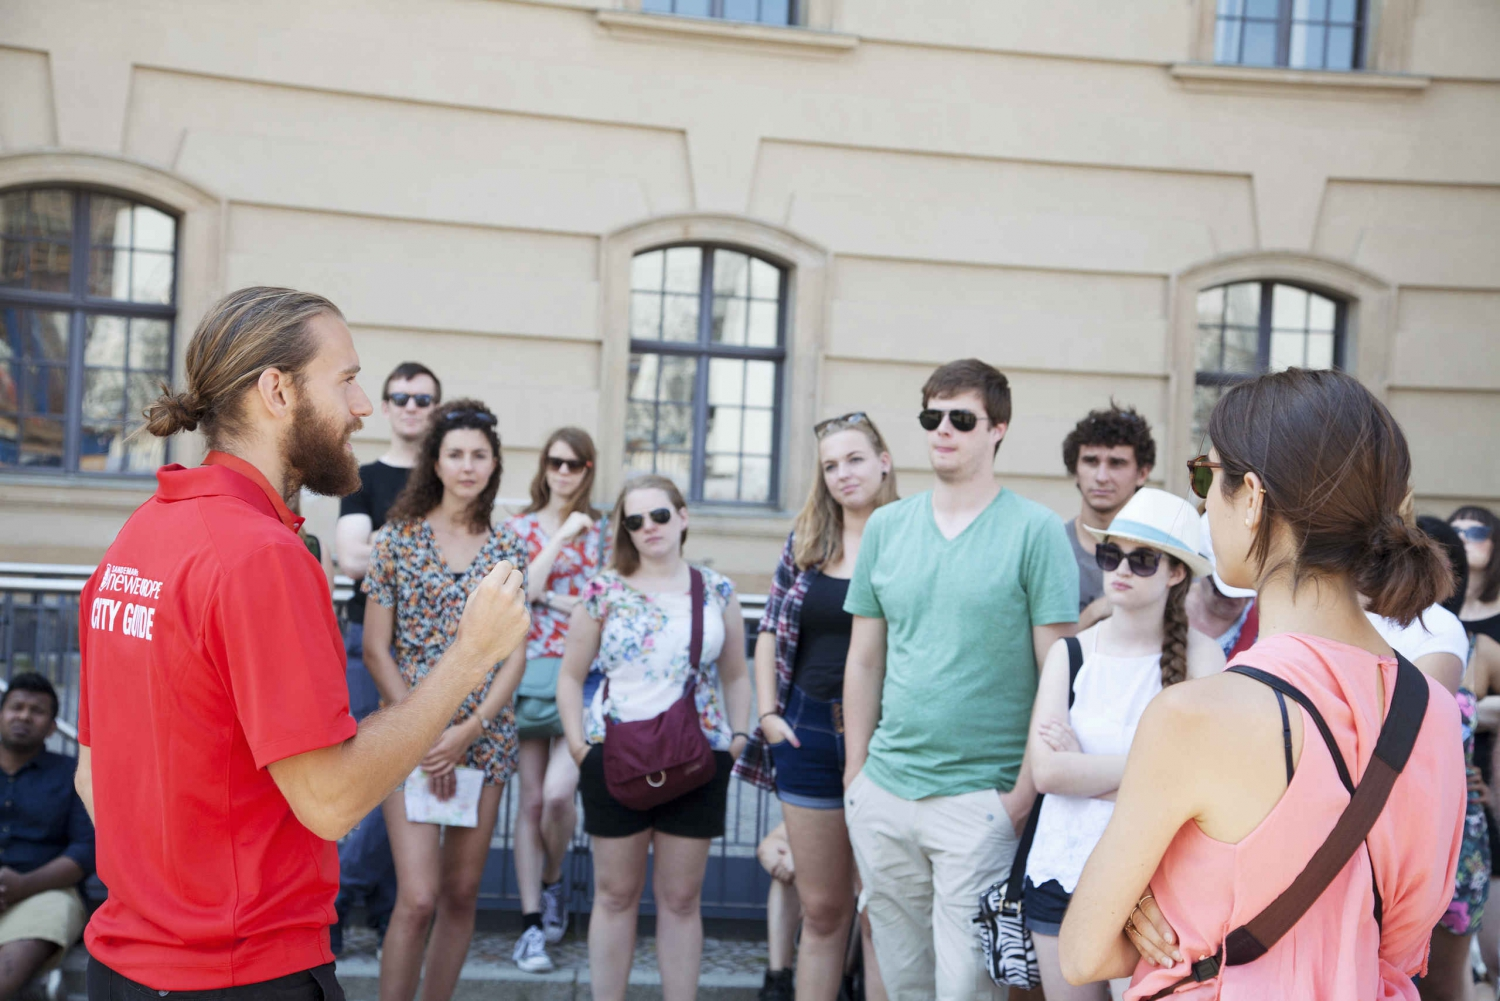 Skip the Line Munich Free Walking Tour with Booking Fee